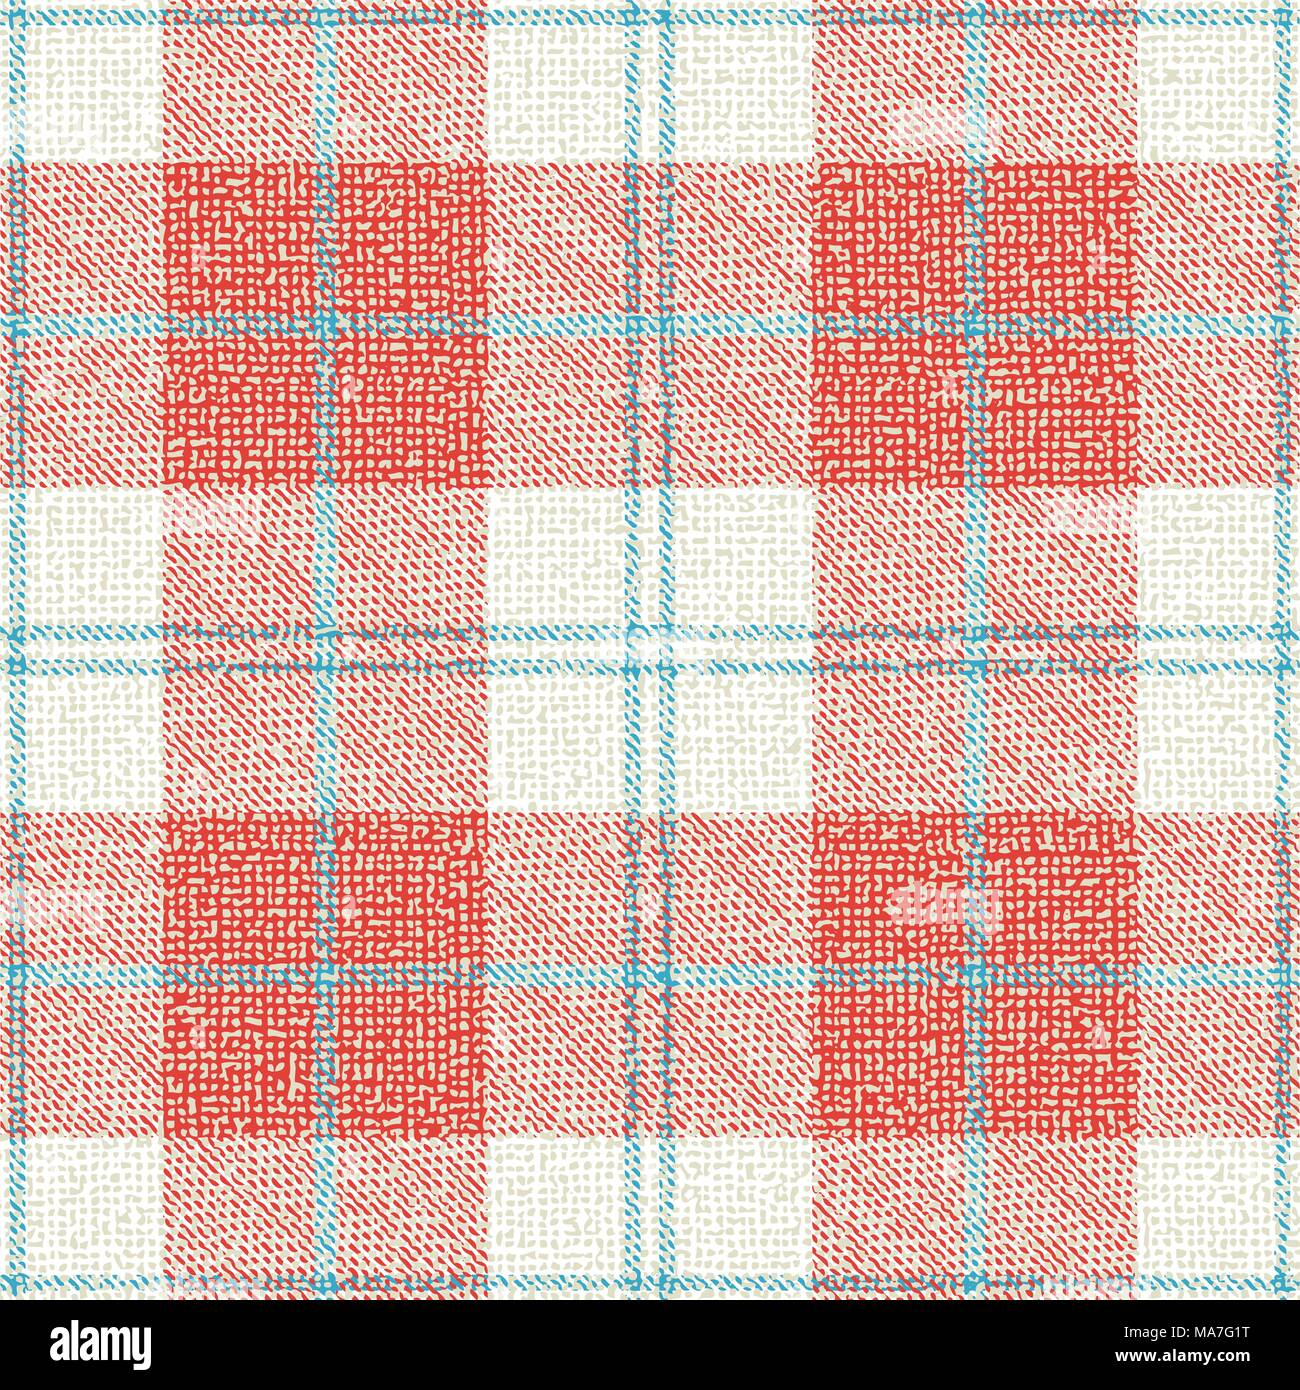 Plaid textured vector pattern background. - Stock Vector